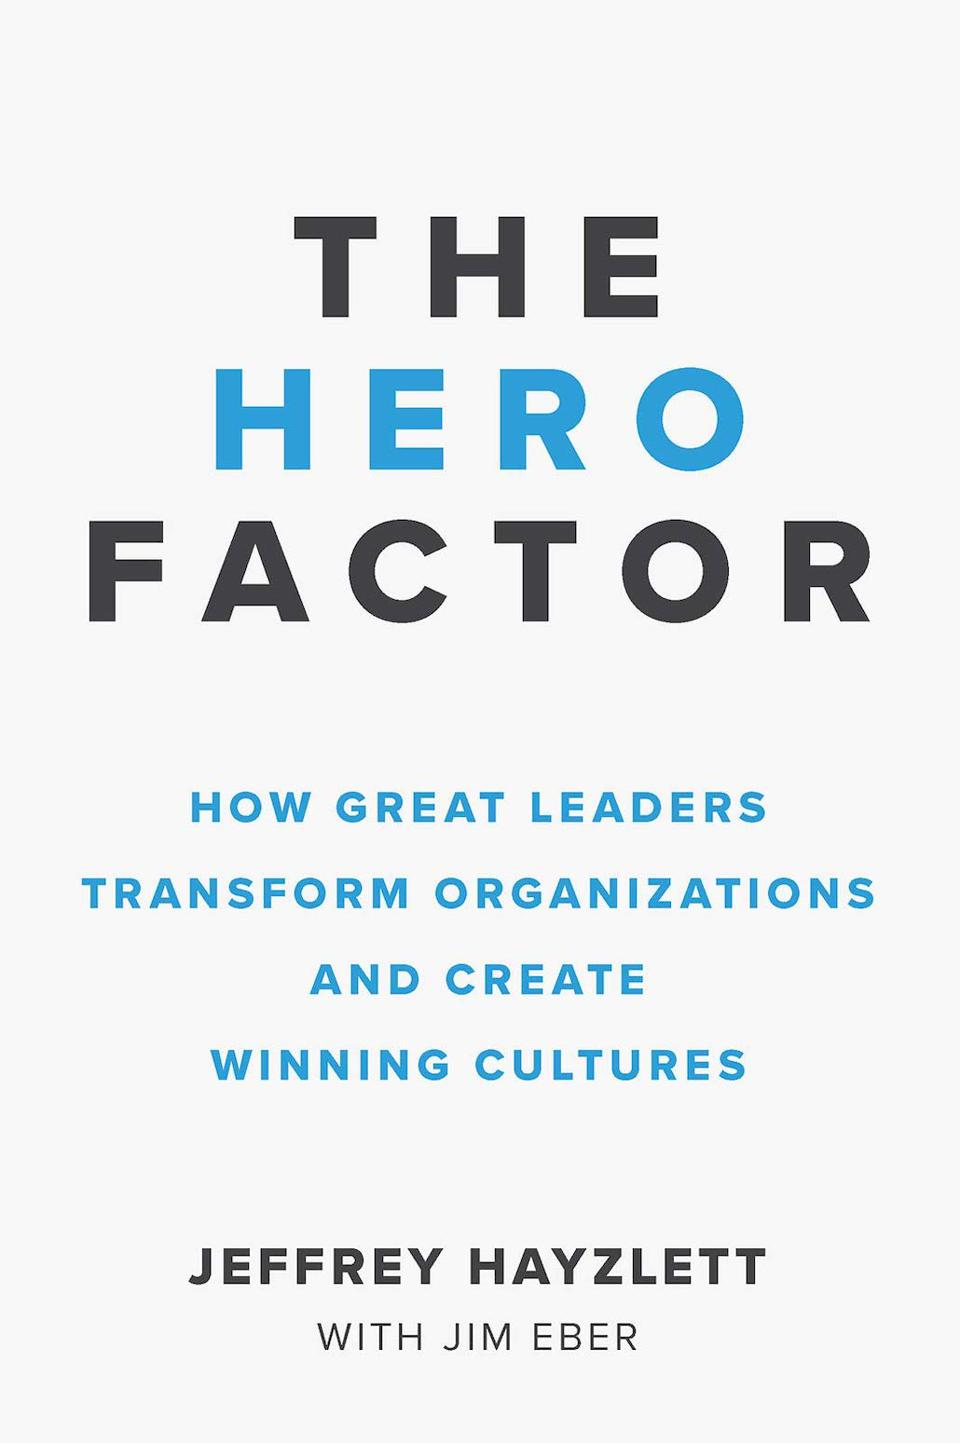 The Hero Factor: How Great Leaders Transform Organizations and Create Winning Cultures by Jeffrey W. Hayzlett